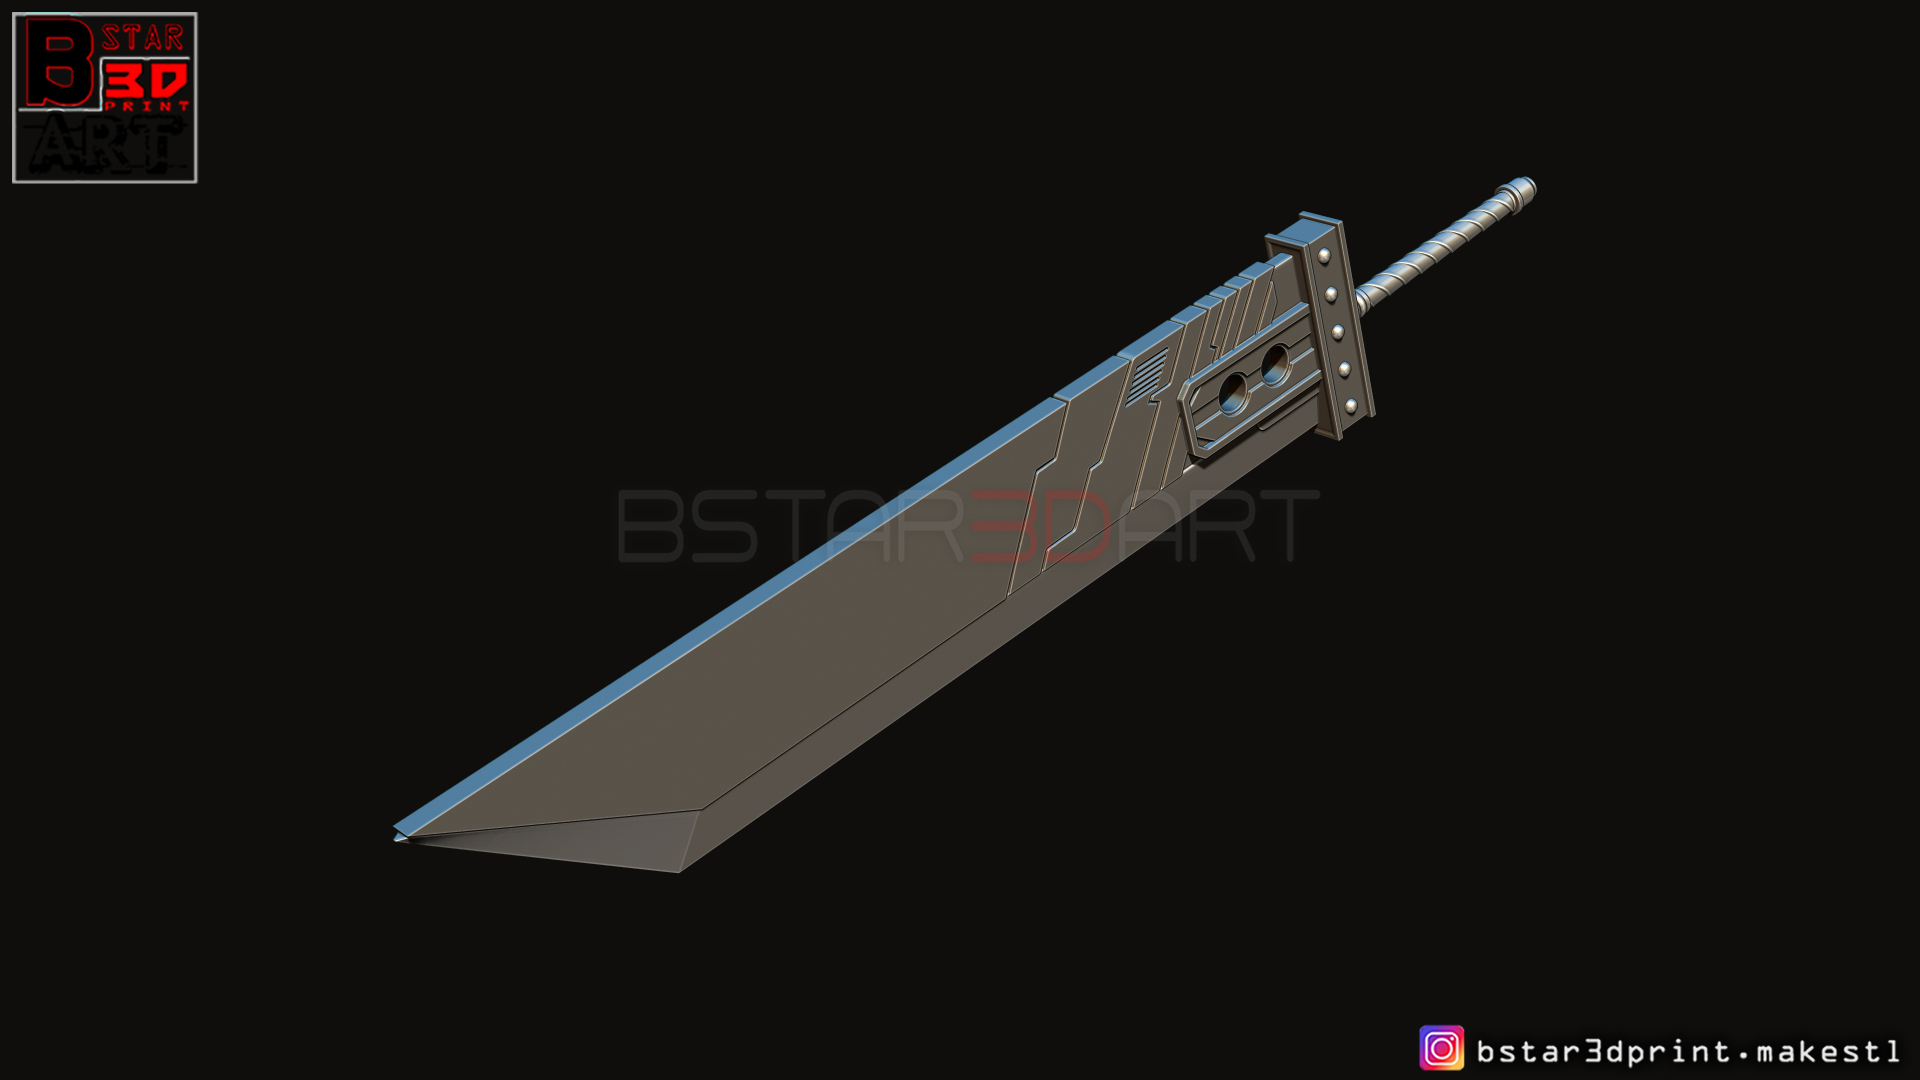 05.jpg Download STL file Buster Sword Cloud - Final Fantasy VII Remake • 3D printable template, Bstar3Dart